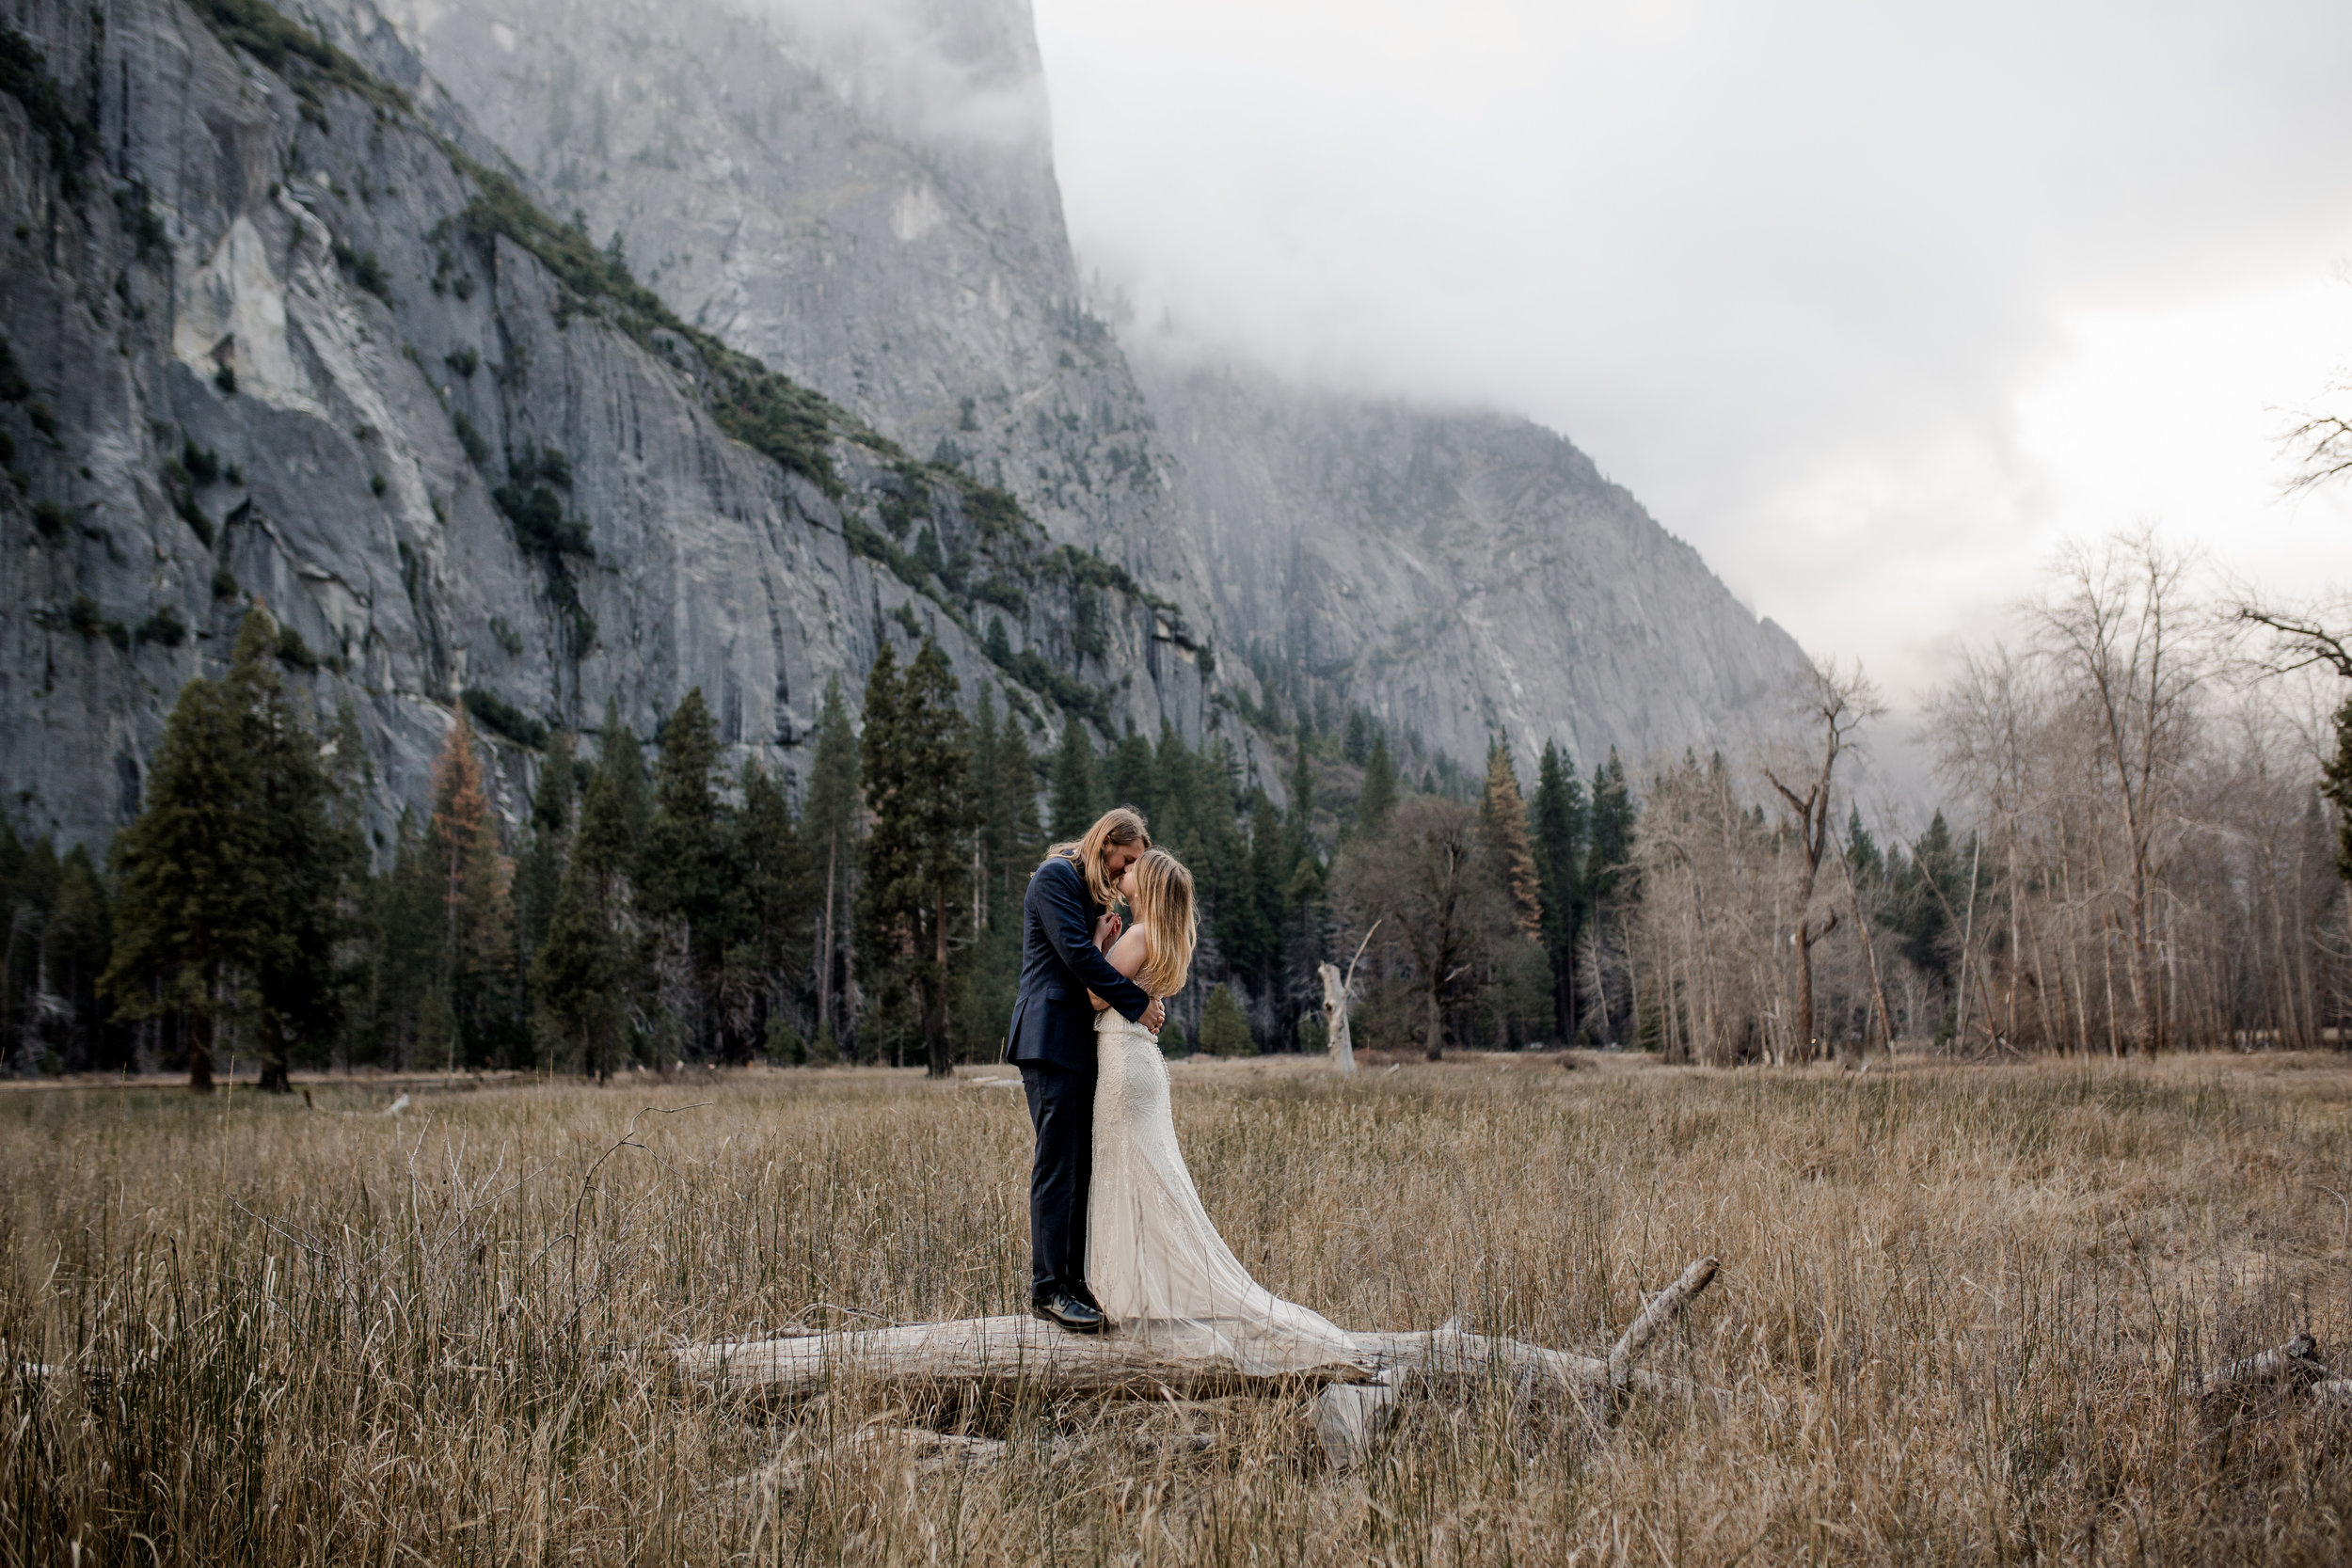 nicole-daacke-photography-yousemite-national-park-elopement-photographer-winter-cloud-moody-elope-inspiration-yosemite-valley-tunnel-view-winter-cloud-fog-weather-wedding-photos-78.jpg